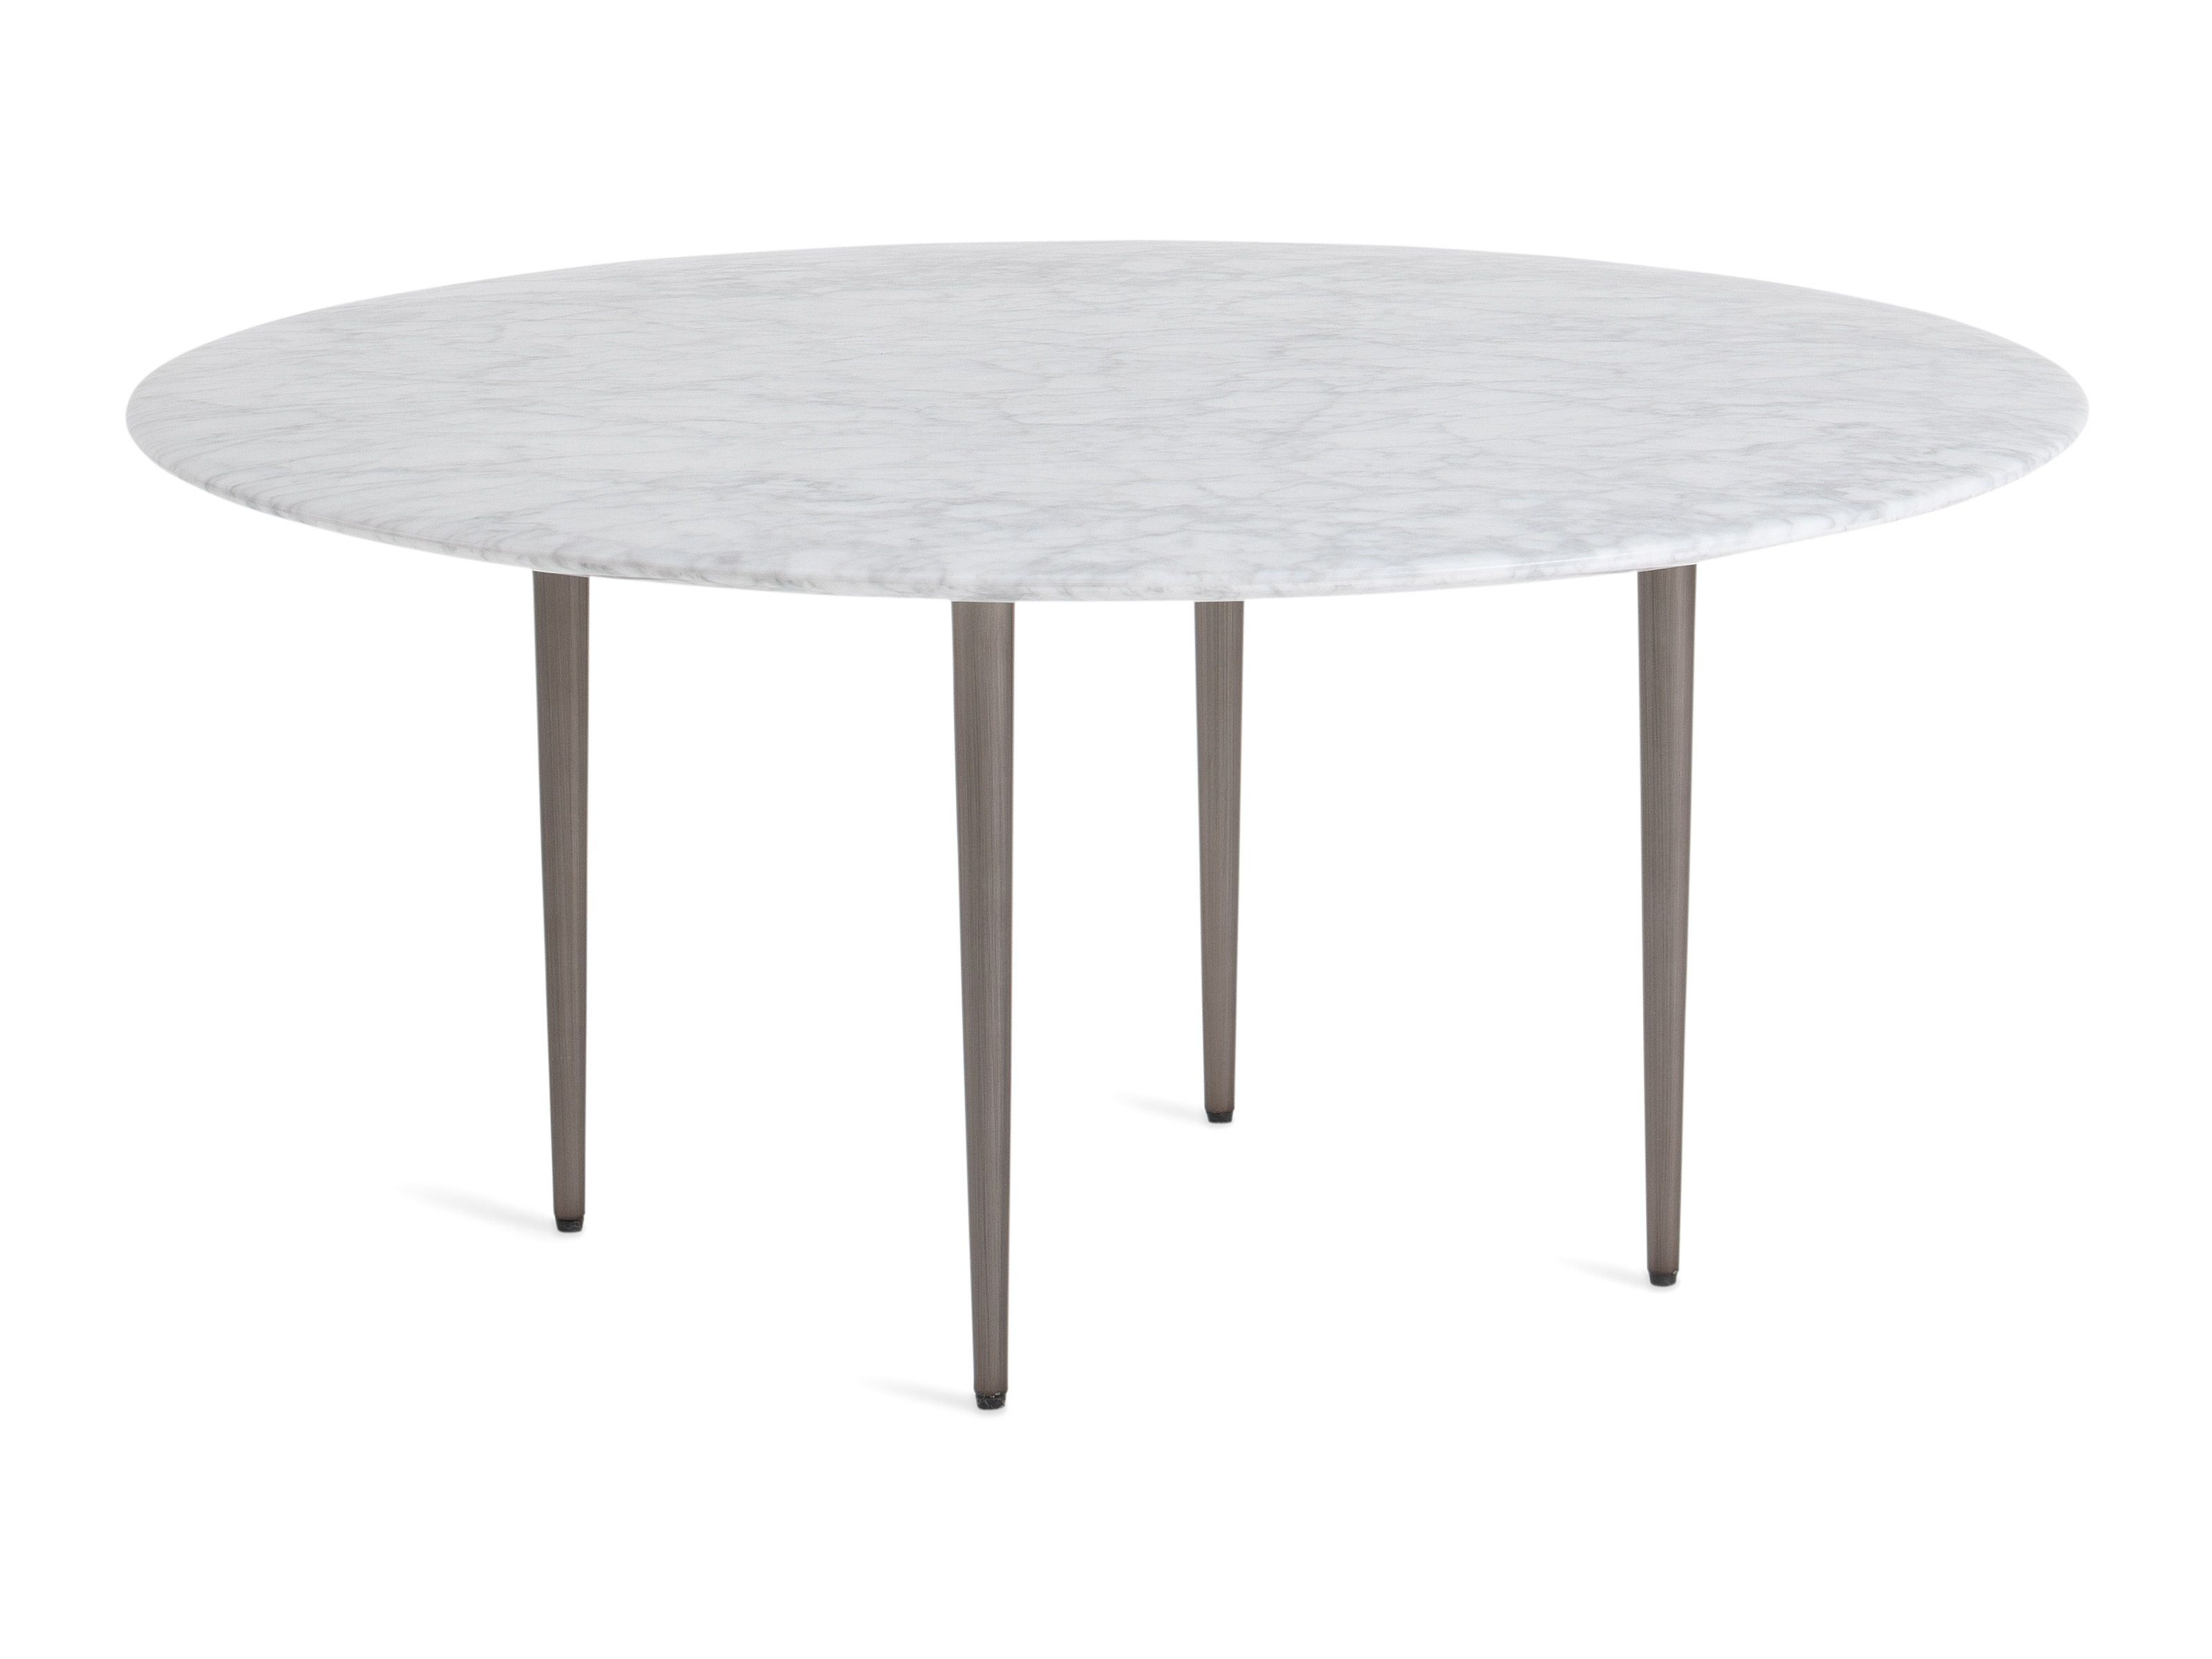 27+ West elm round coffee table glass ideas